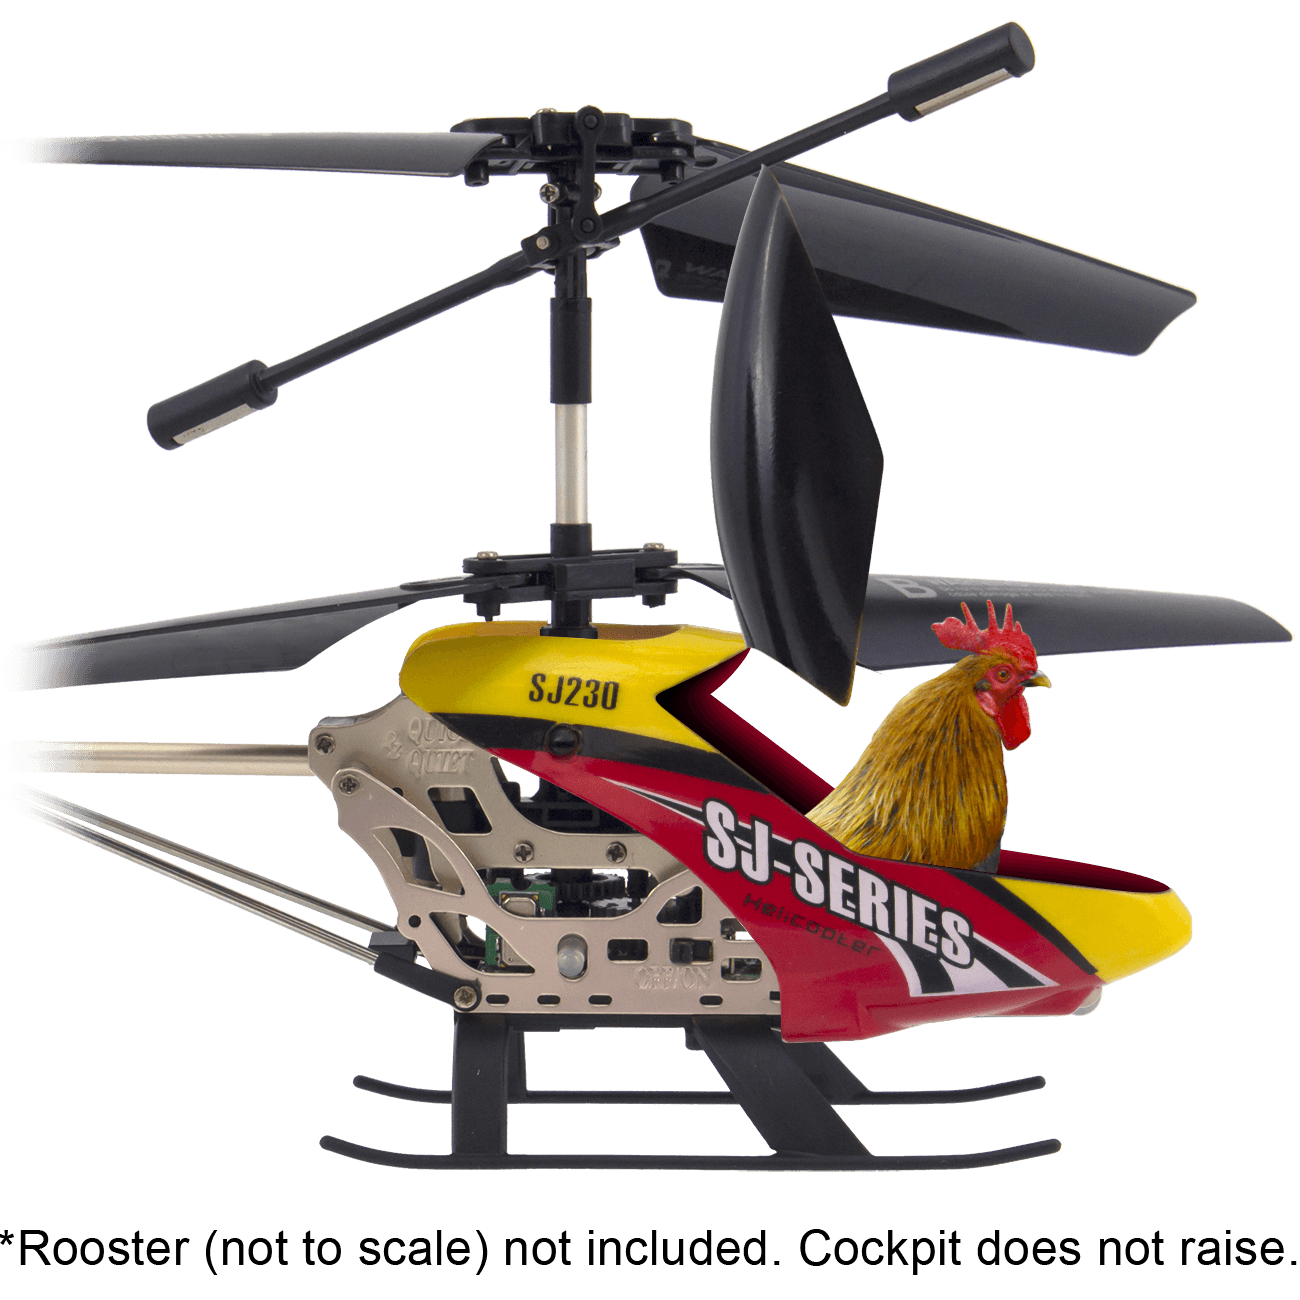 sj series remote control helicopter manual